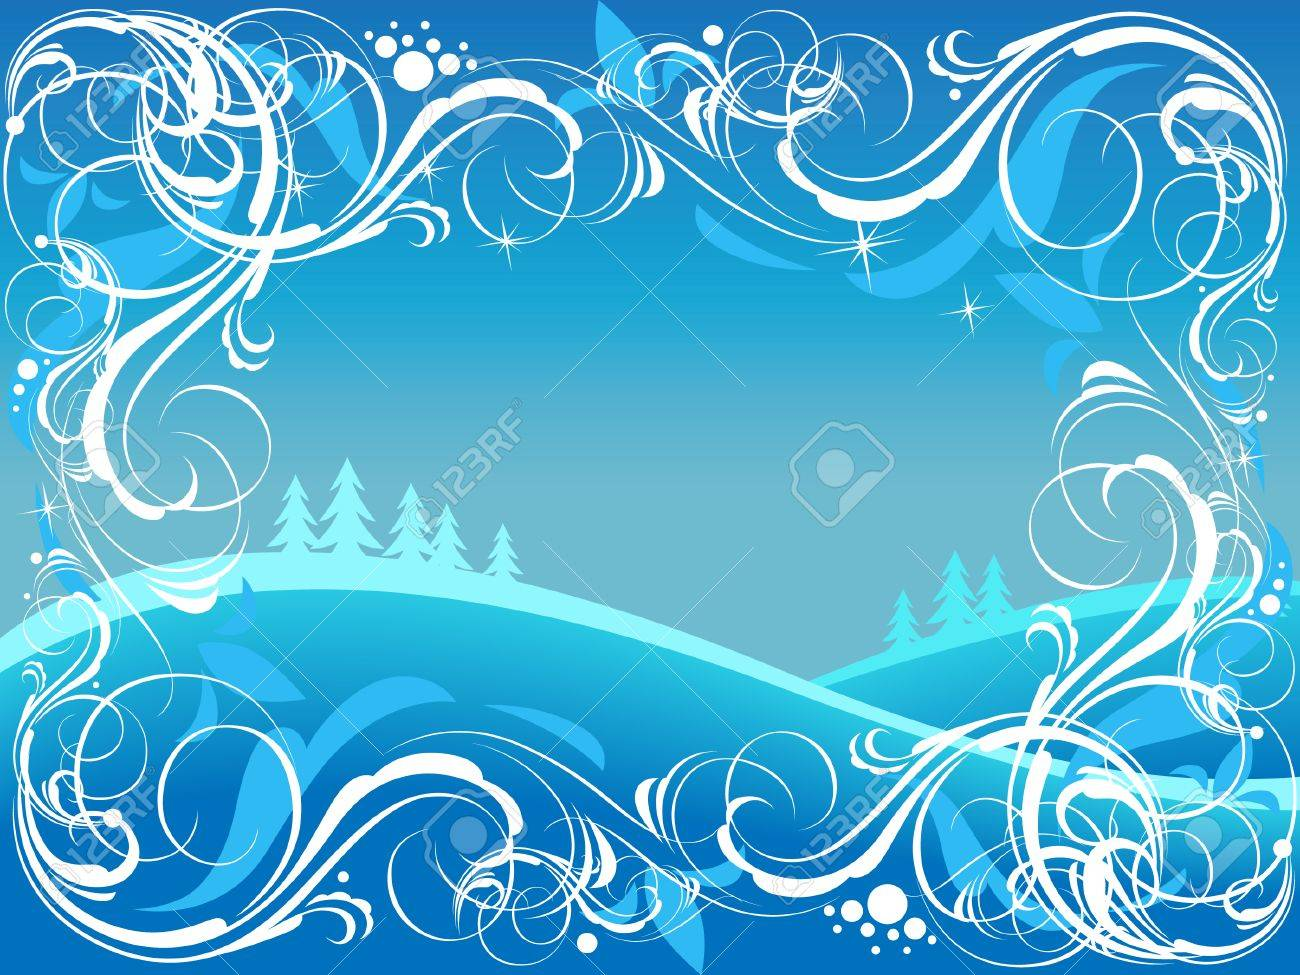 Background with ornate border and winter landscape. Stock Vector - 5707873